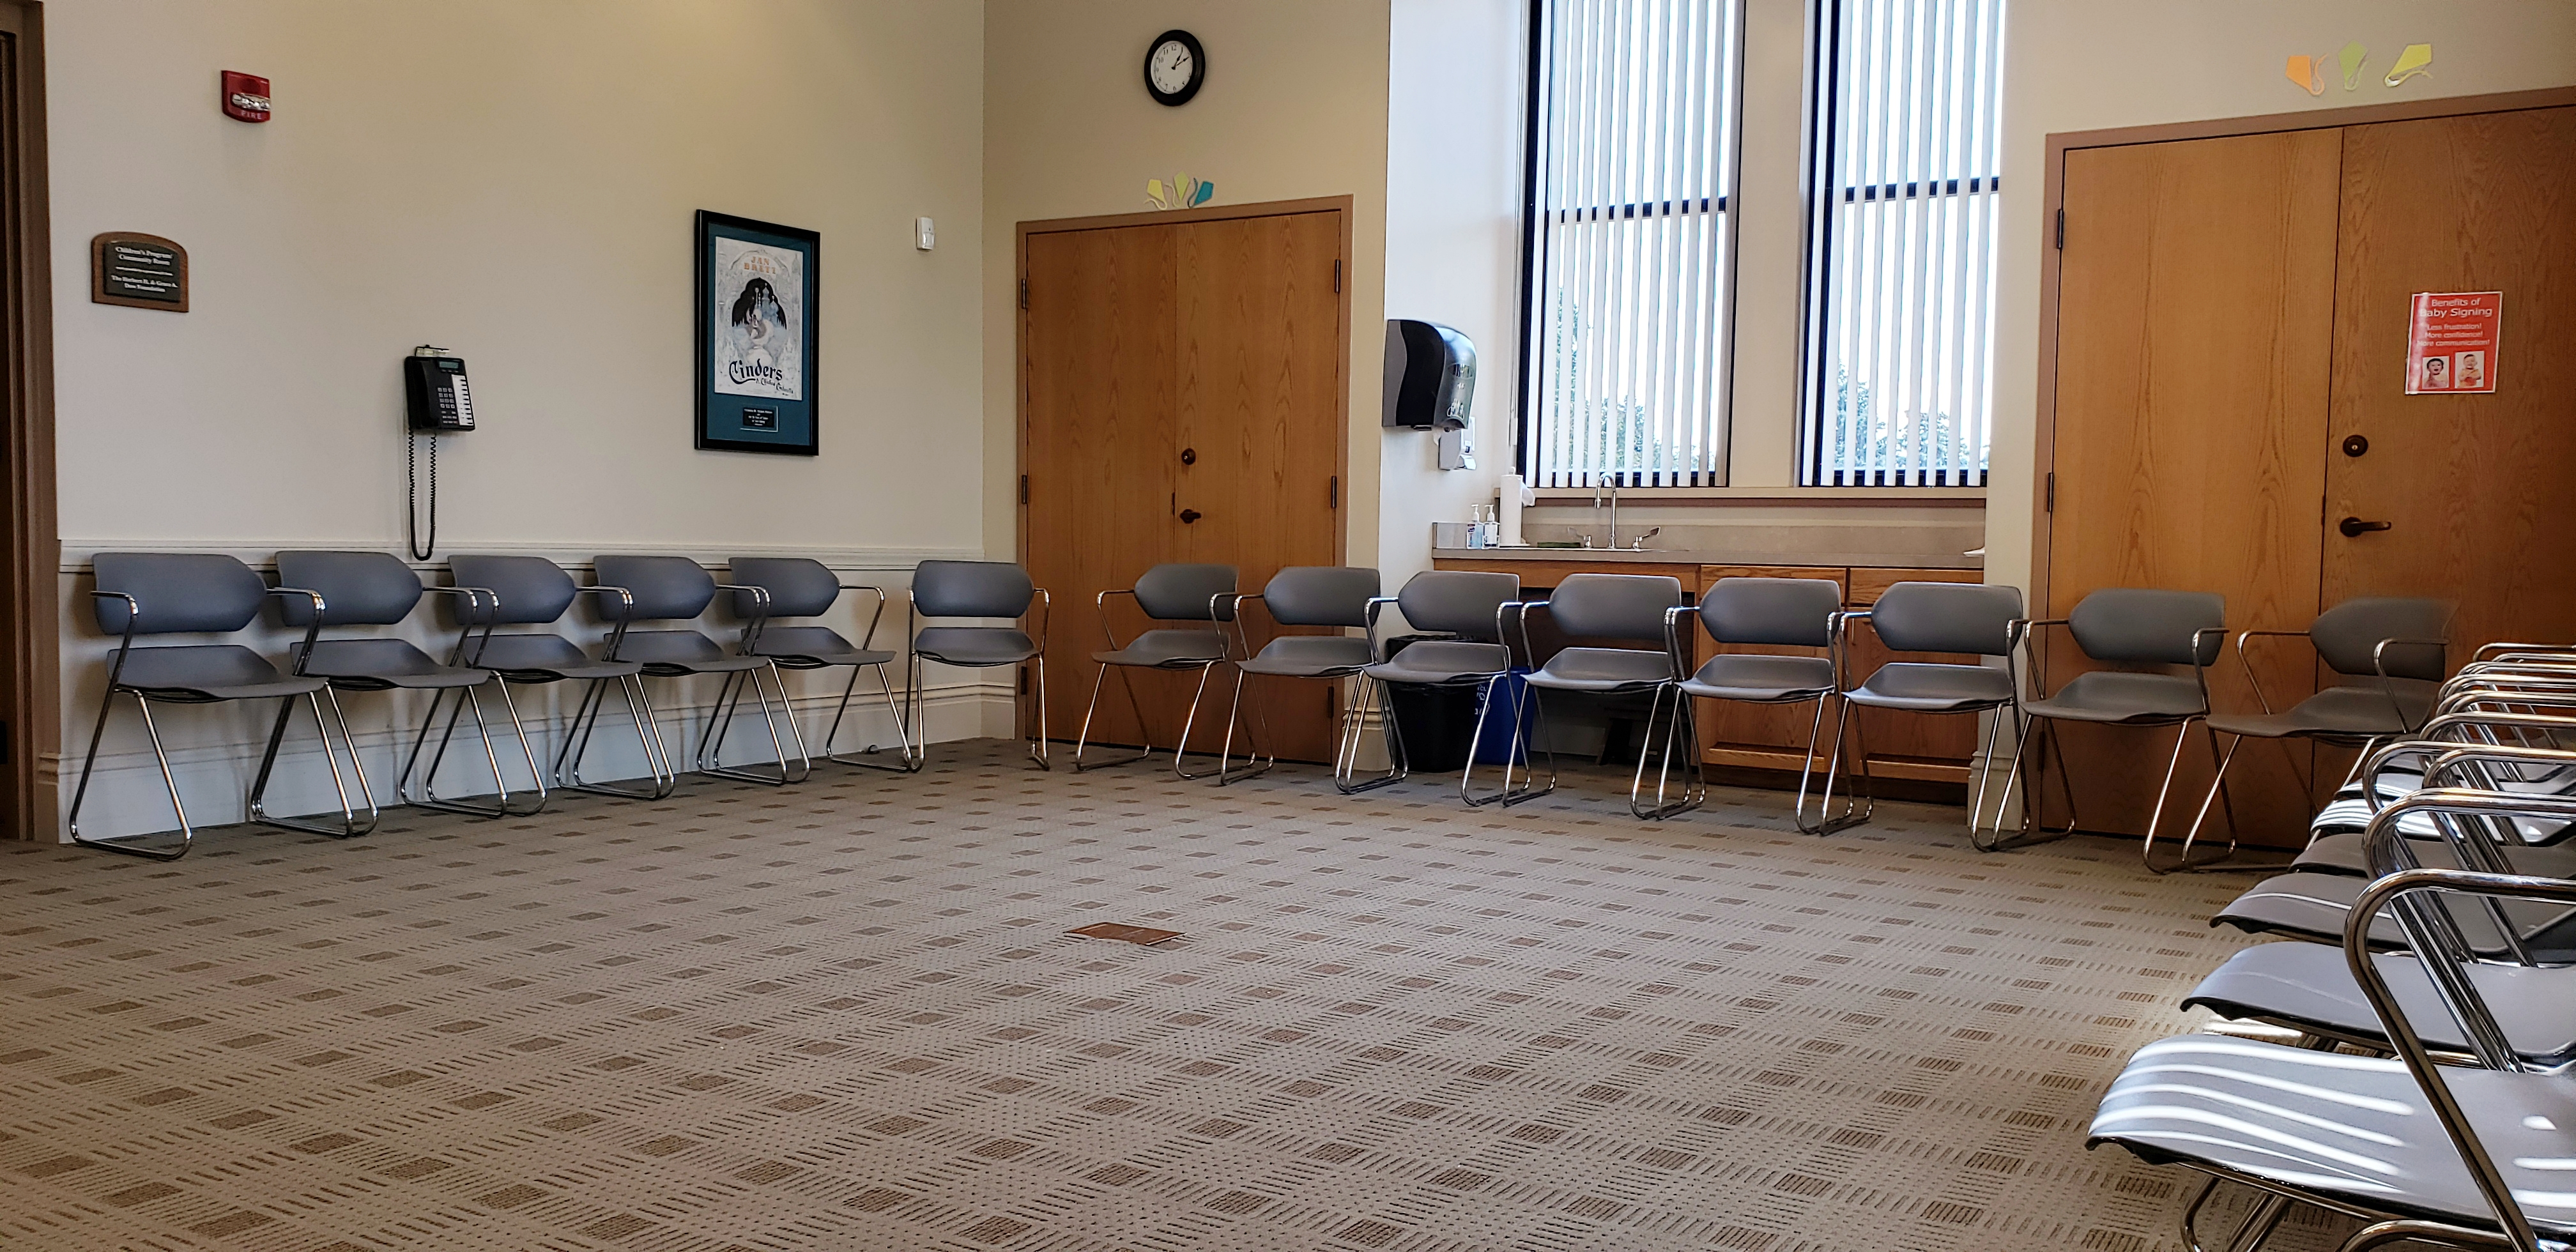 Interior shot of the Sage Community Room with chairs lined up against walls